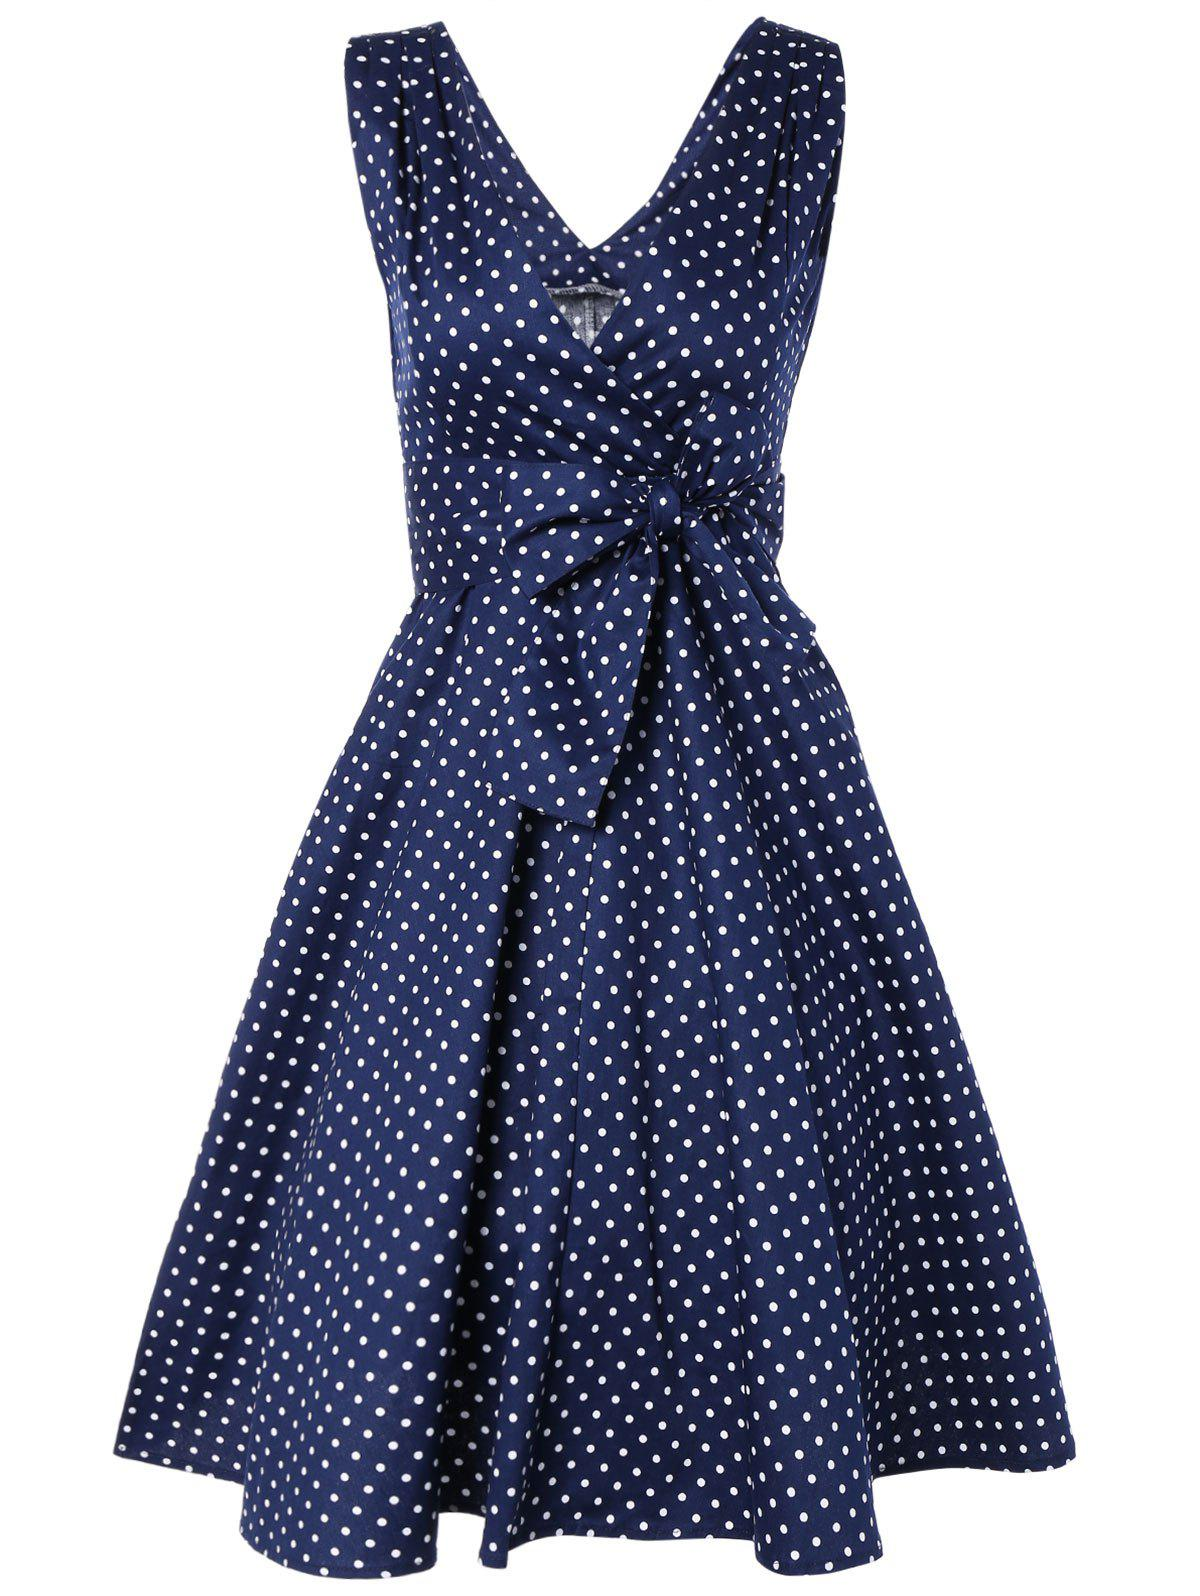 Bowknot Polka Dot Fit and Flare Dress - NAVY BLUE M